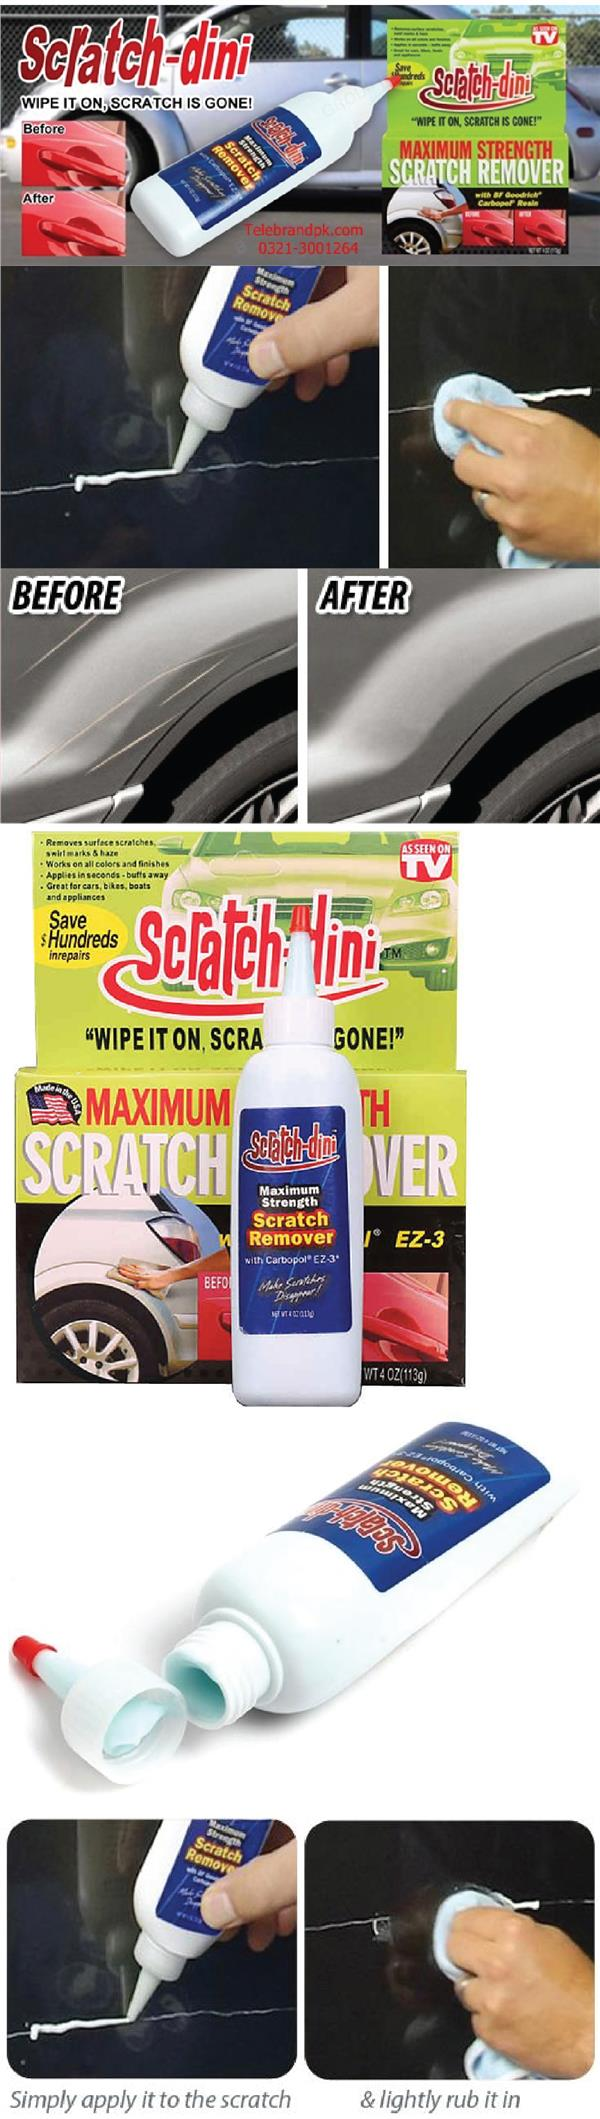 Scratch-Dini Maximum Strength Scratch Remover Dissapear Car Motorcycle